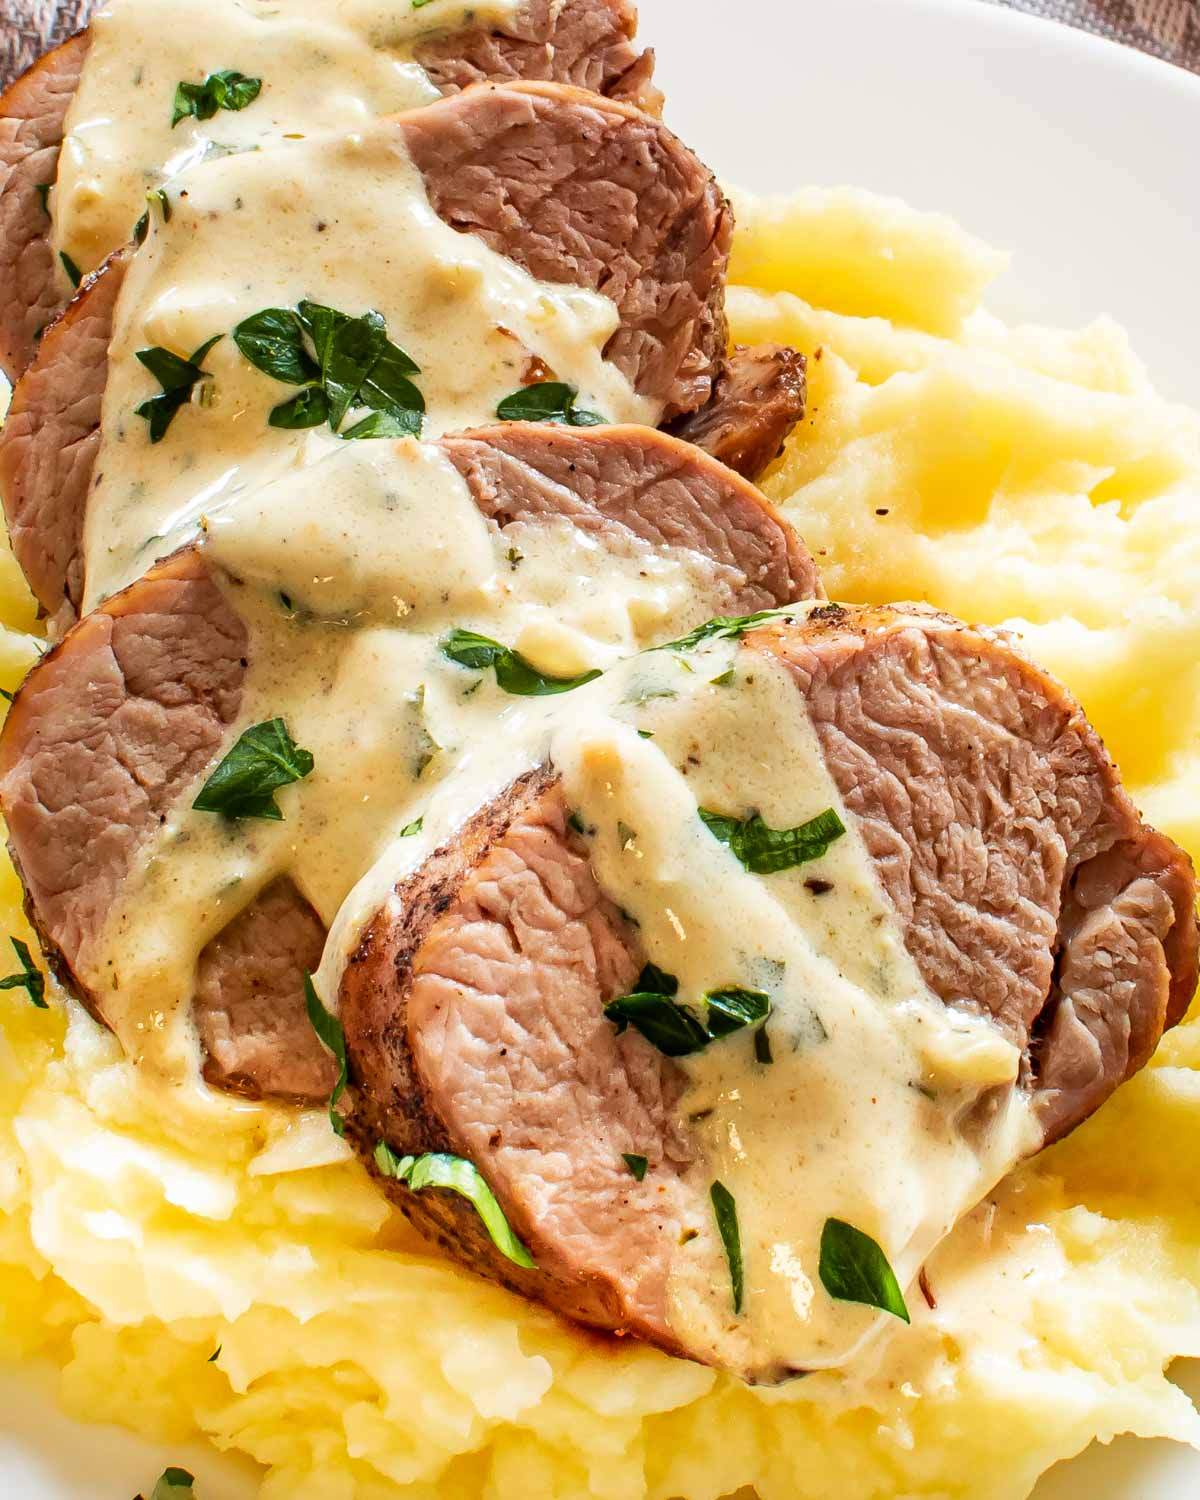 sliced up pork tenderloin with mustard sauce over a bed of mashed potatoes garnished with parsley.